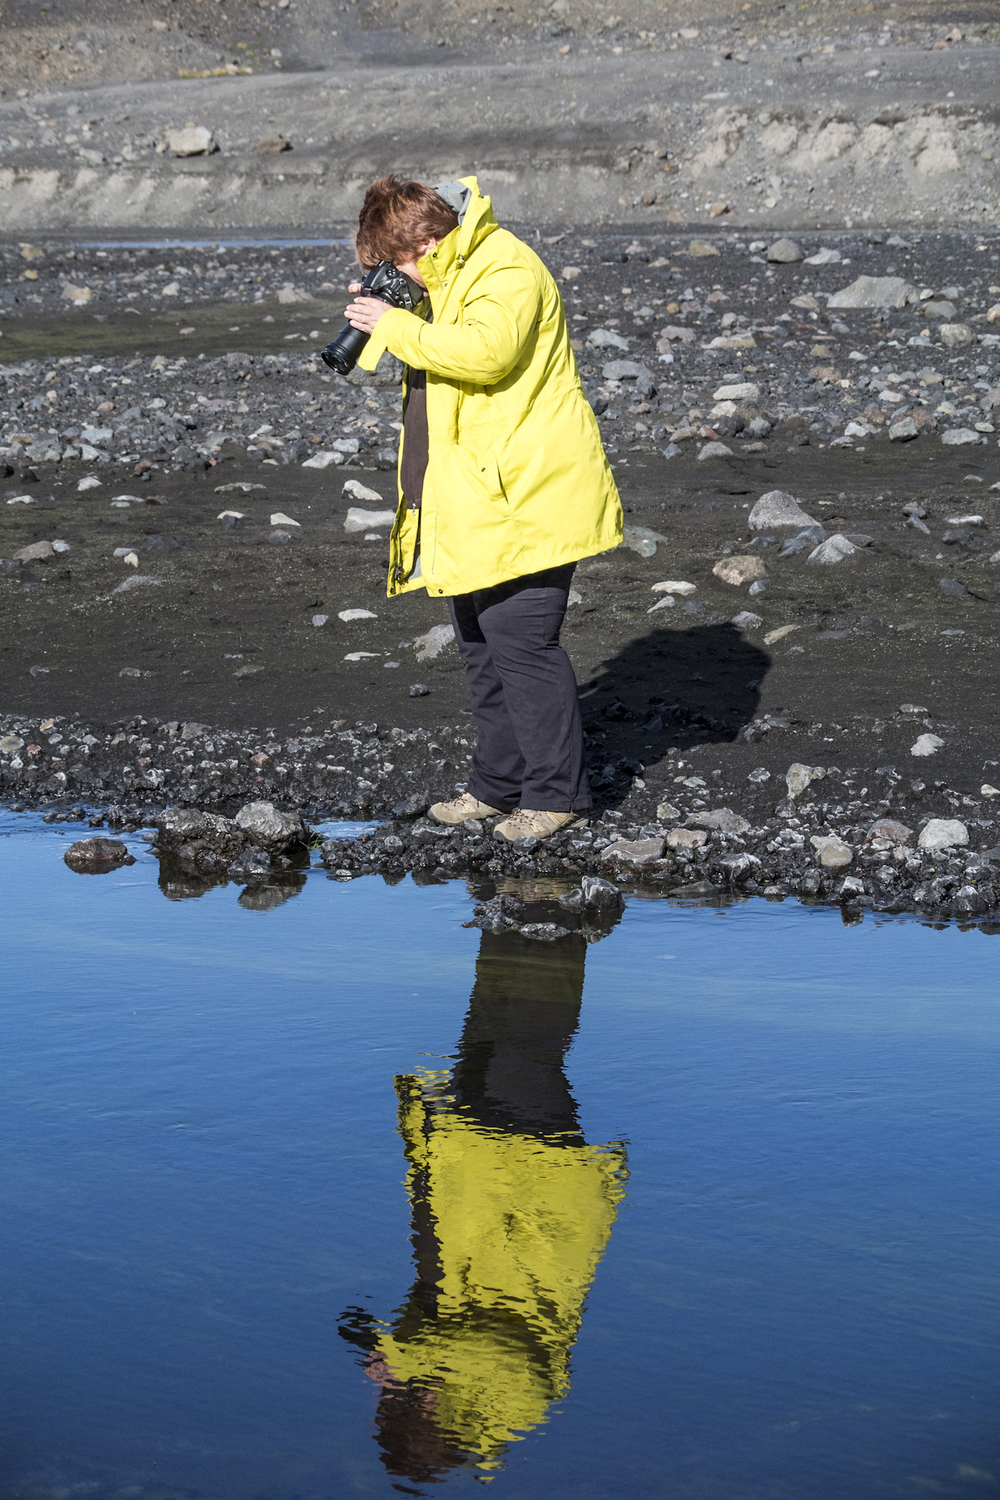 Kathy in Iceland, photographing algae in a volcanic pool.